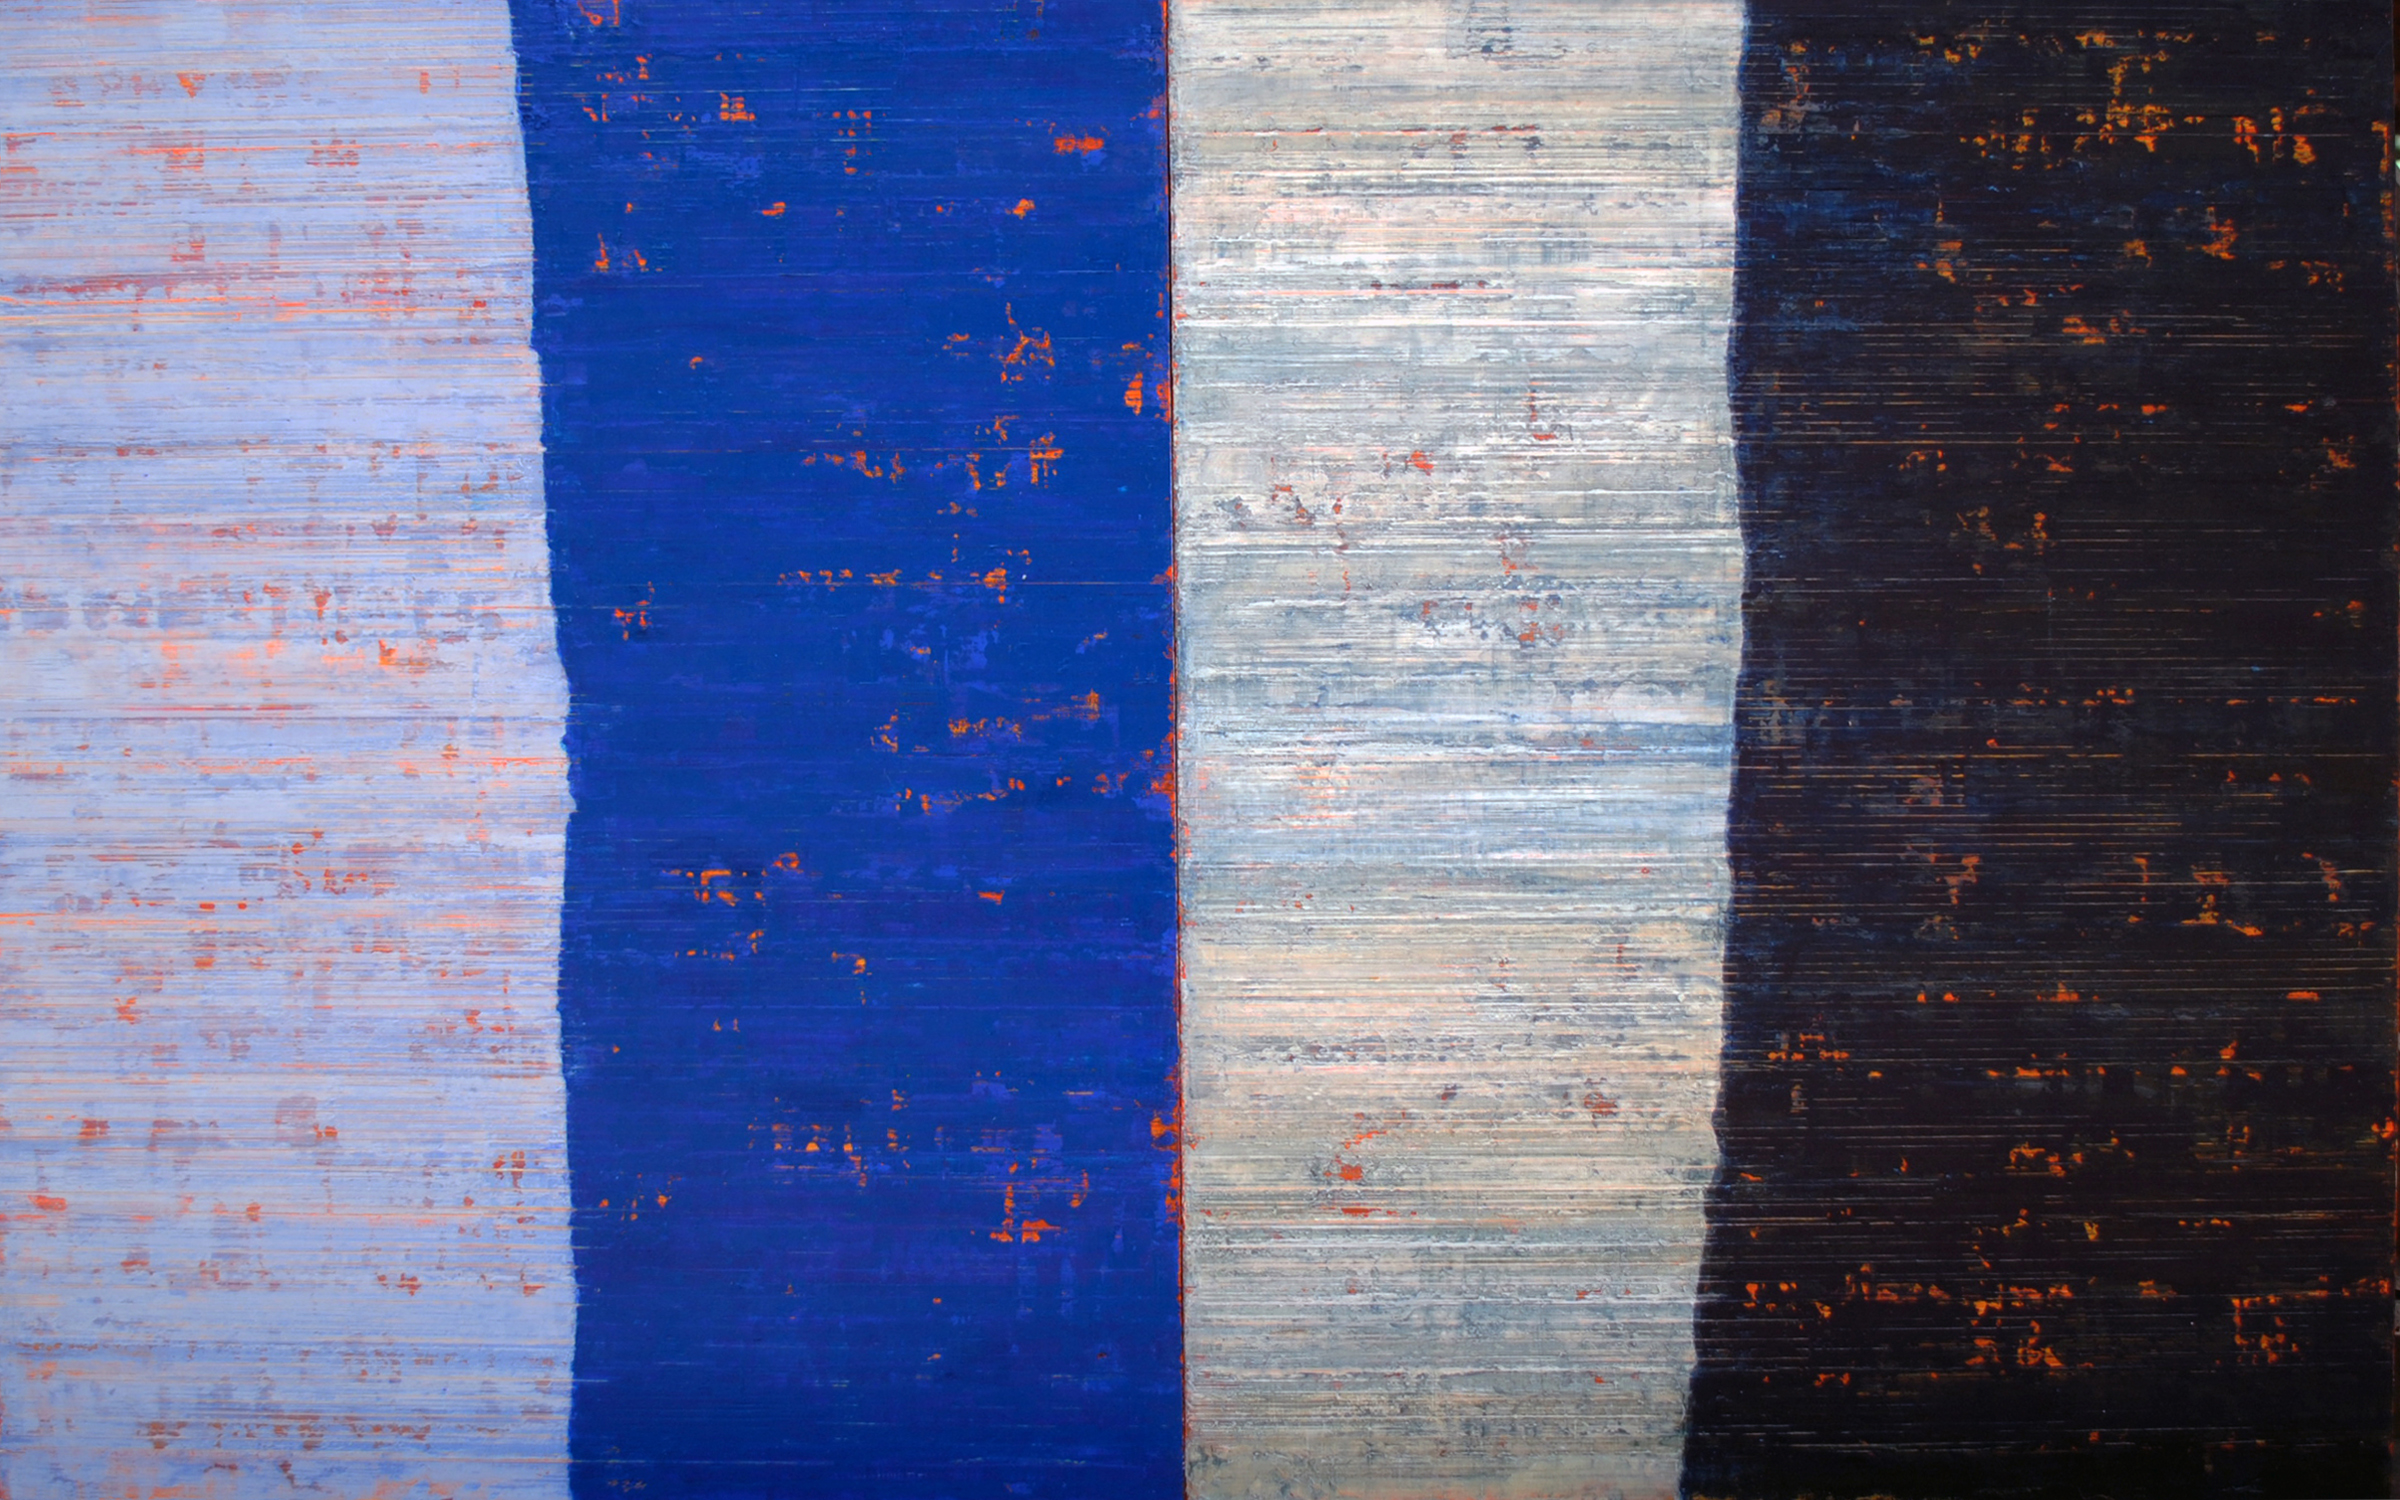 Linea Terminale: 11.11, 2011, Oil on linen over panels, 20 x 36 inches.